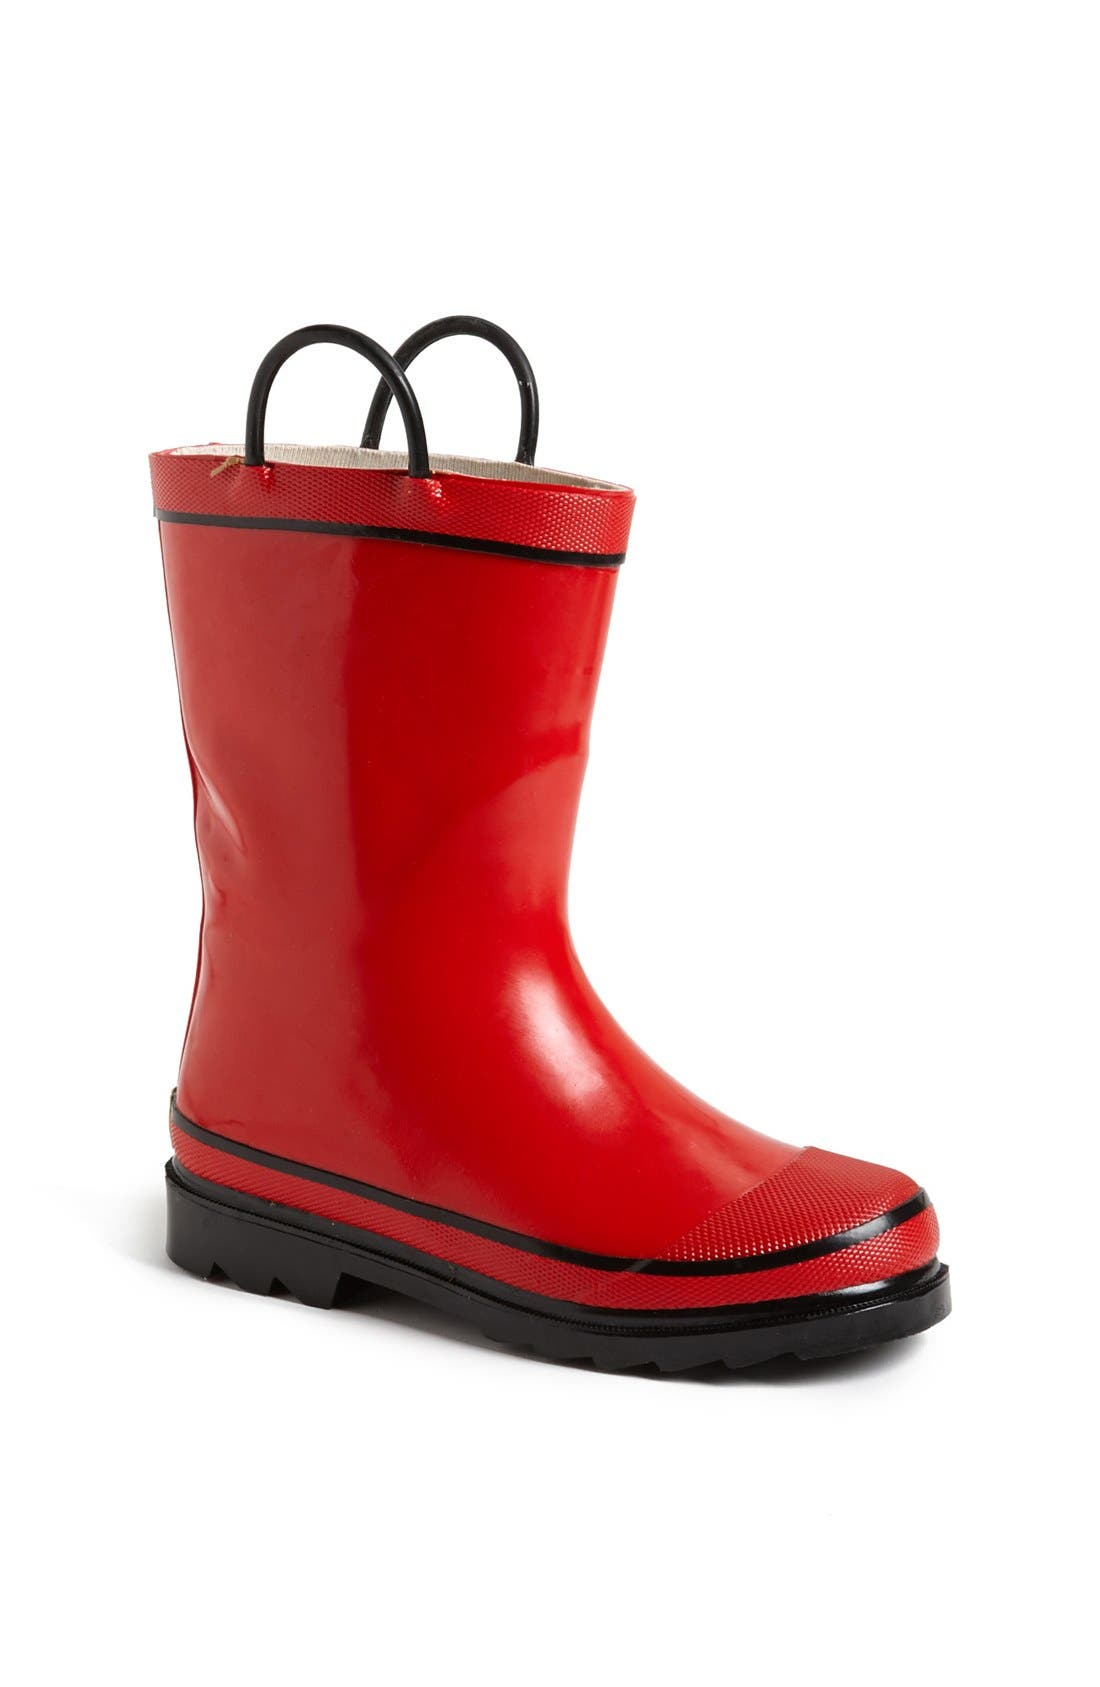 Alternate Image 1 Selected - Western Chief 'Firechief 2' Rain Boot  (Walker, Toddler, Little Kid & Big Kid)